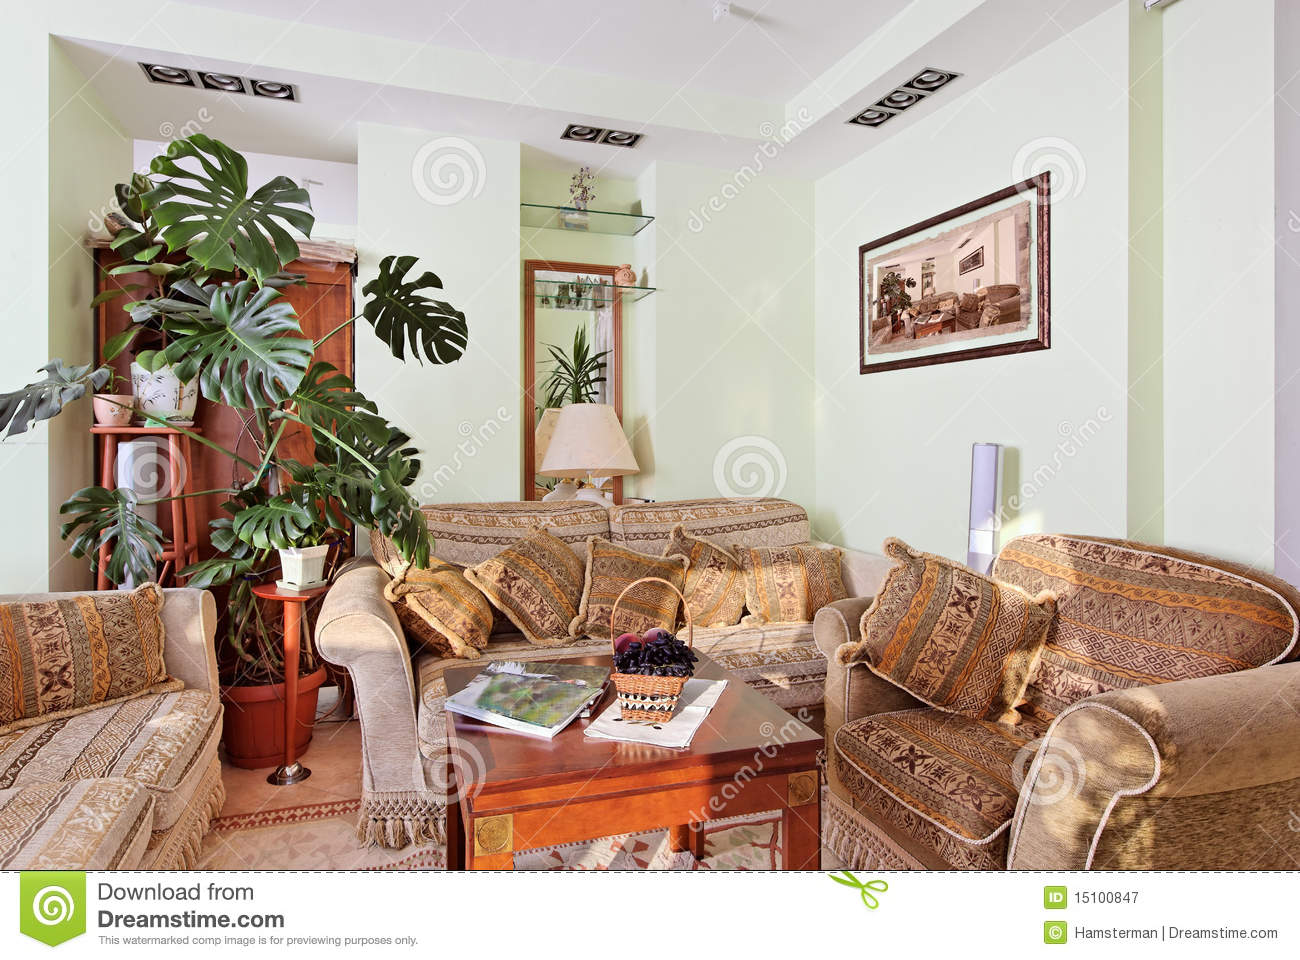 Classic drawing room interior rococo furniture royalty for Drawing room furniture pictures